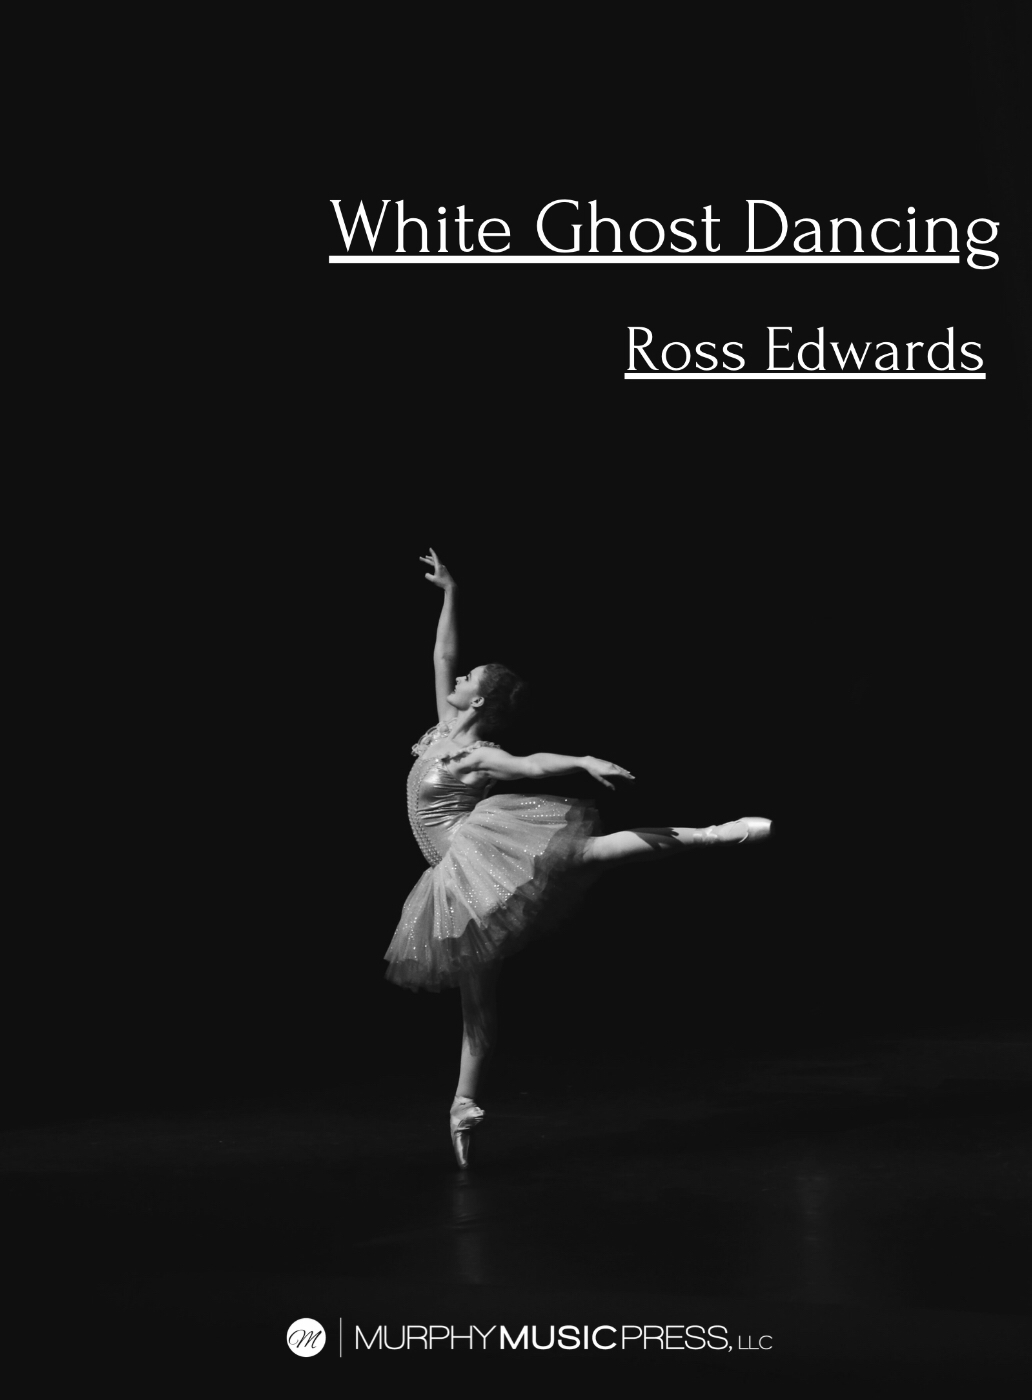 White Ghost Dancing by Ross Edwards